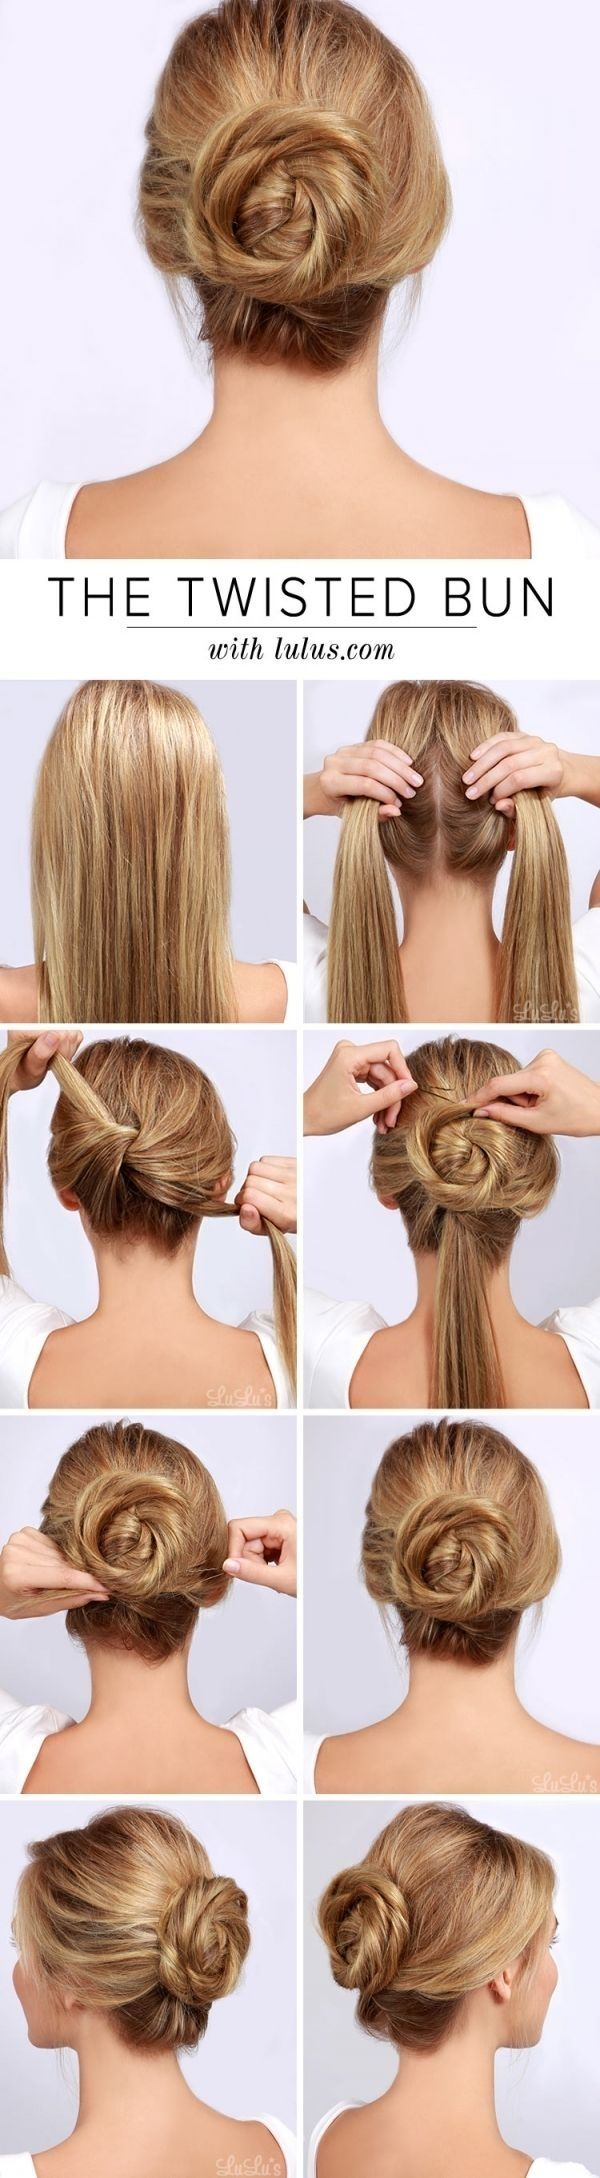 16 Gorgeous Hair Styles for Lazy Girls like Me ...